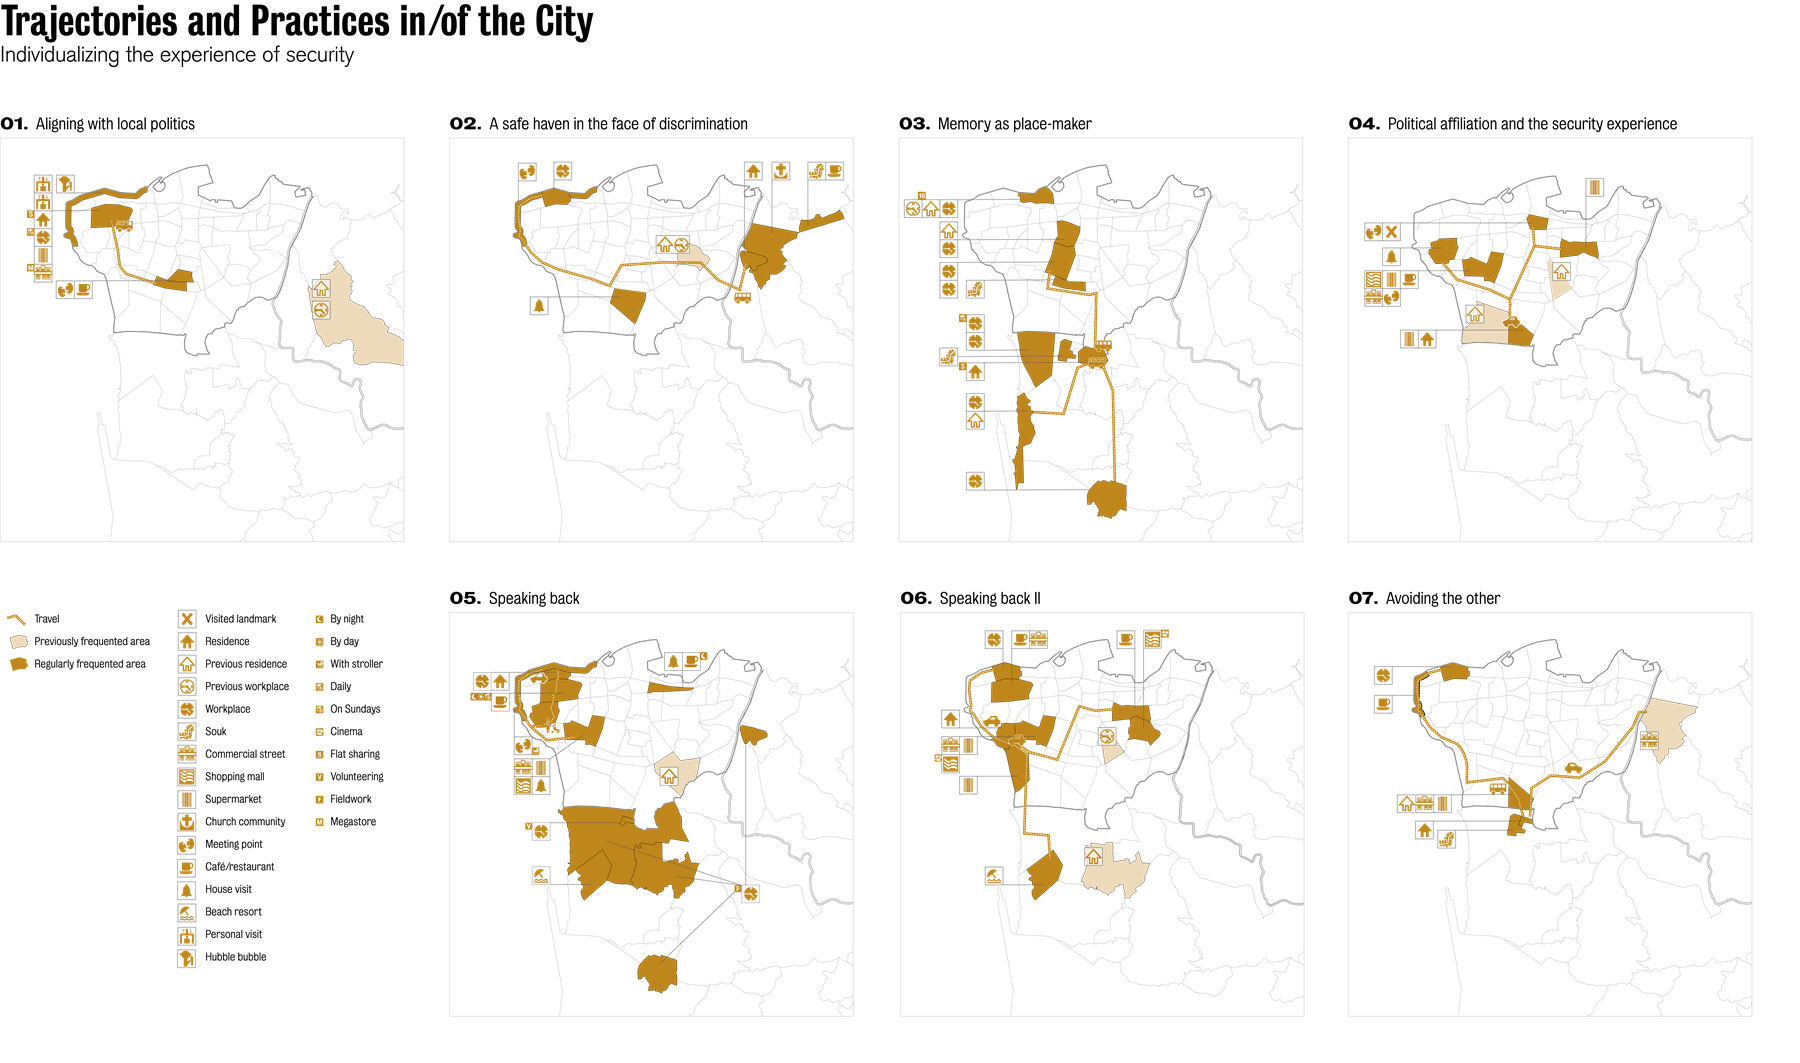 These maps show the trajectories of several individuals in Beirut. The stories of three domestic workers (one from Bangladesh, the second from Nigeria, and the third a Palestinian refugee), one Syrian worker, and four middle class Lebanese citizen show how class, sect, and nationality, intersect with experiences of the city and its security.